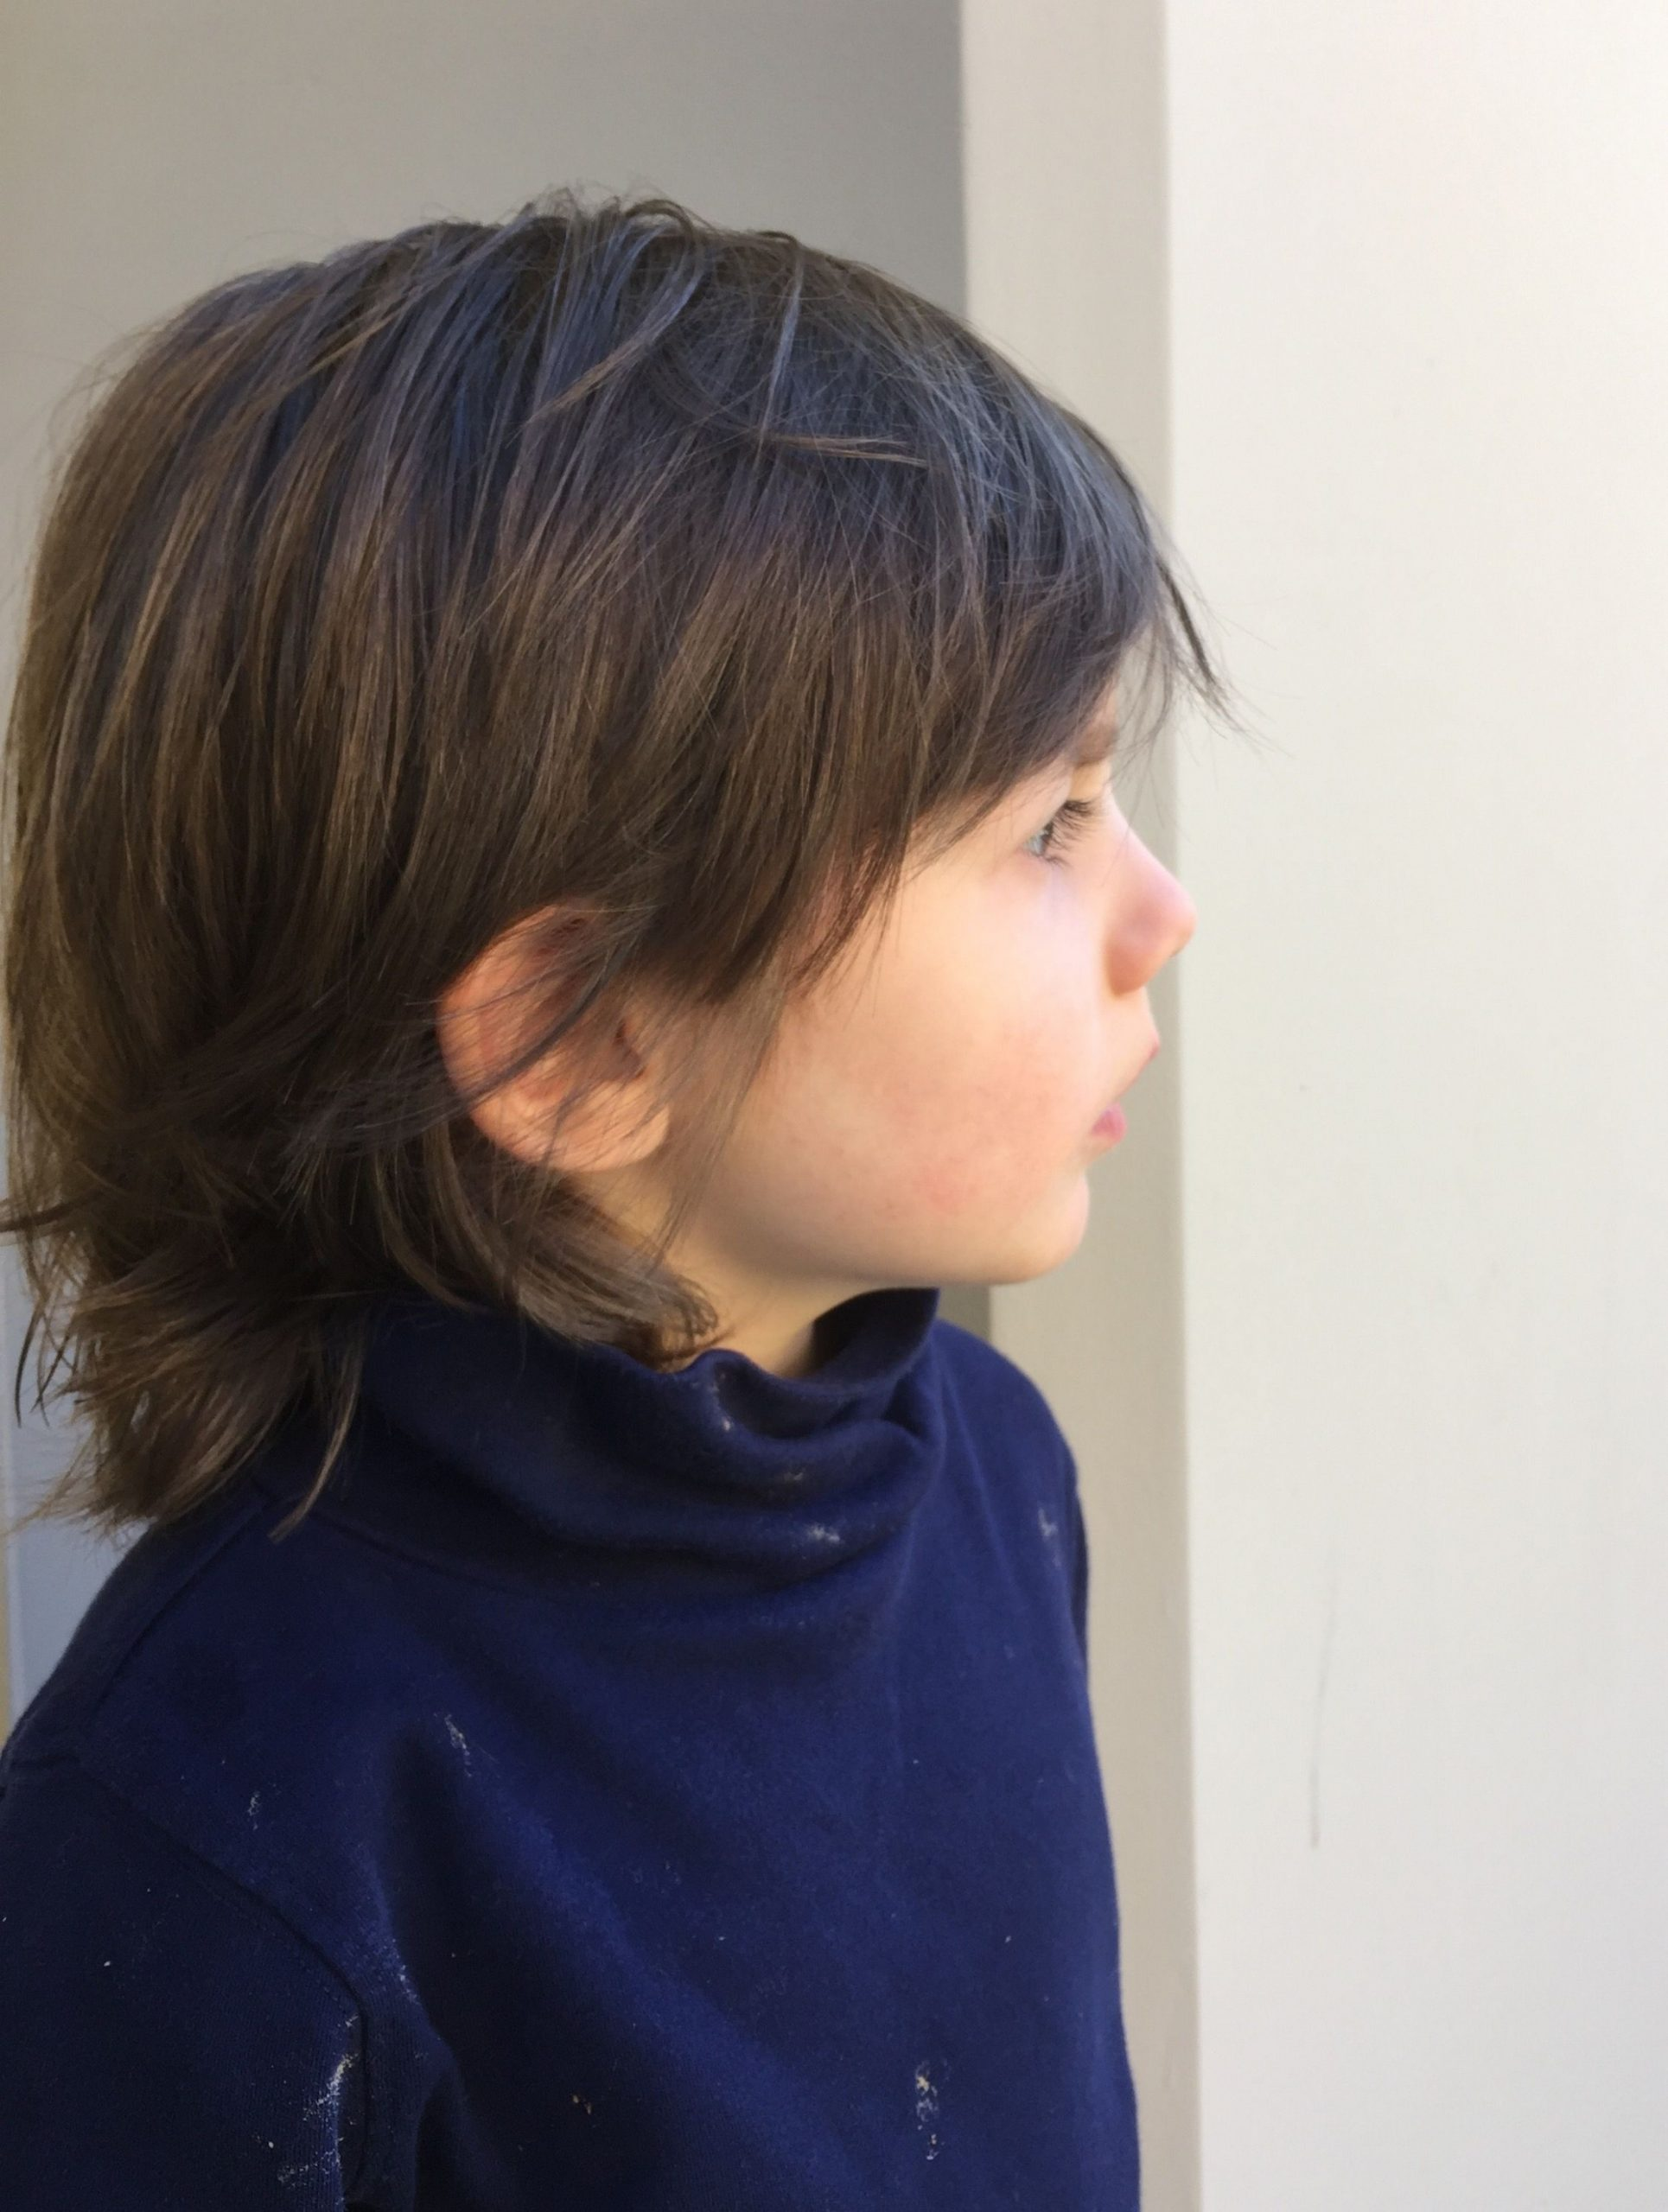 Pin On Boys, Long Haired Boys Haircuts For Boys With Long Hair